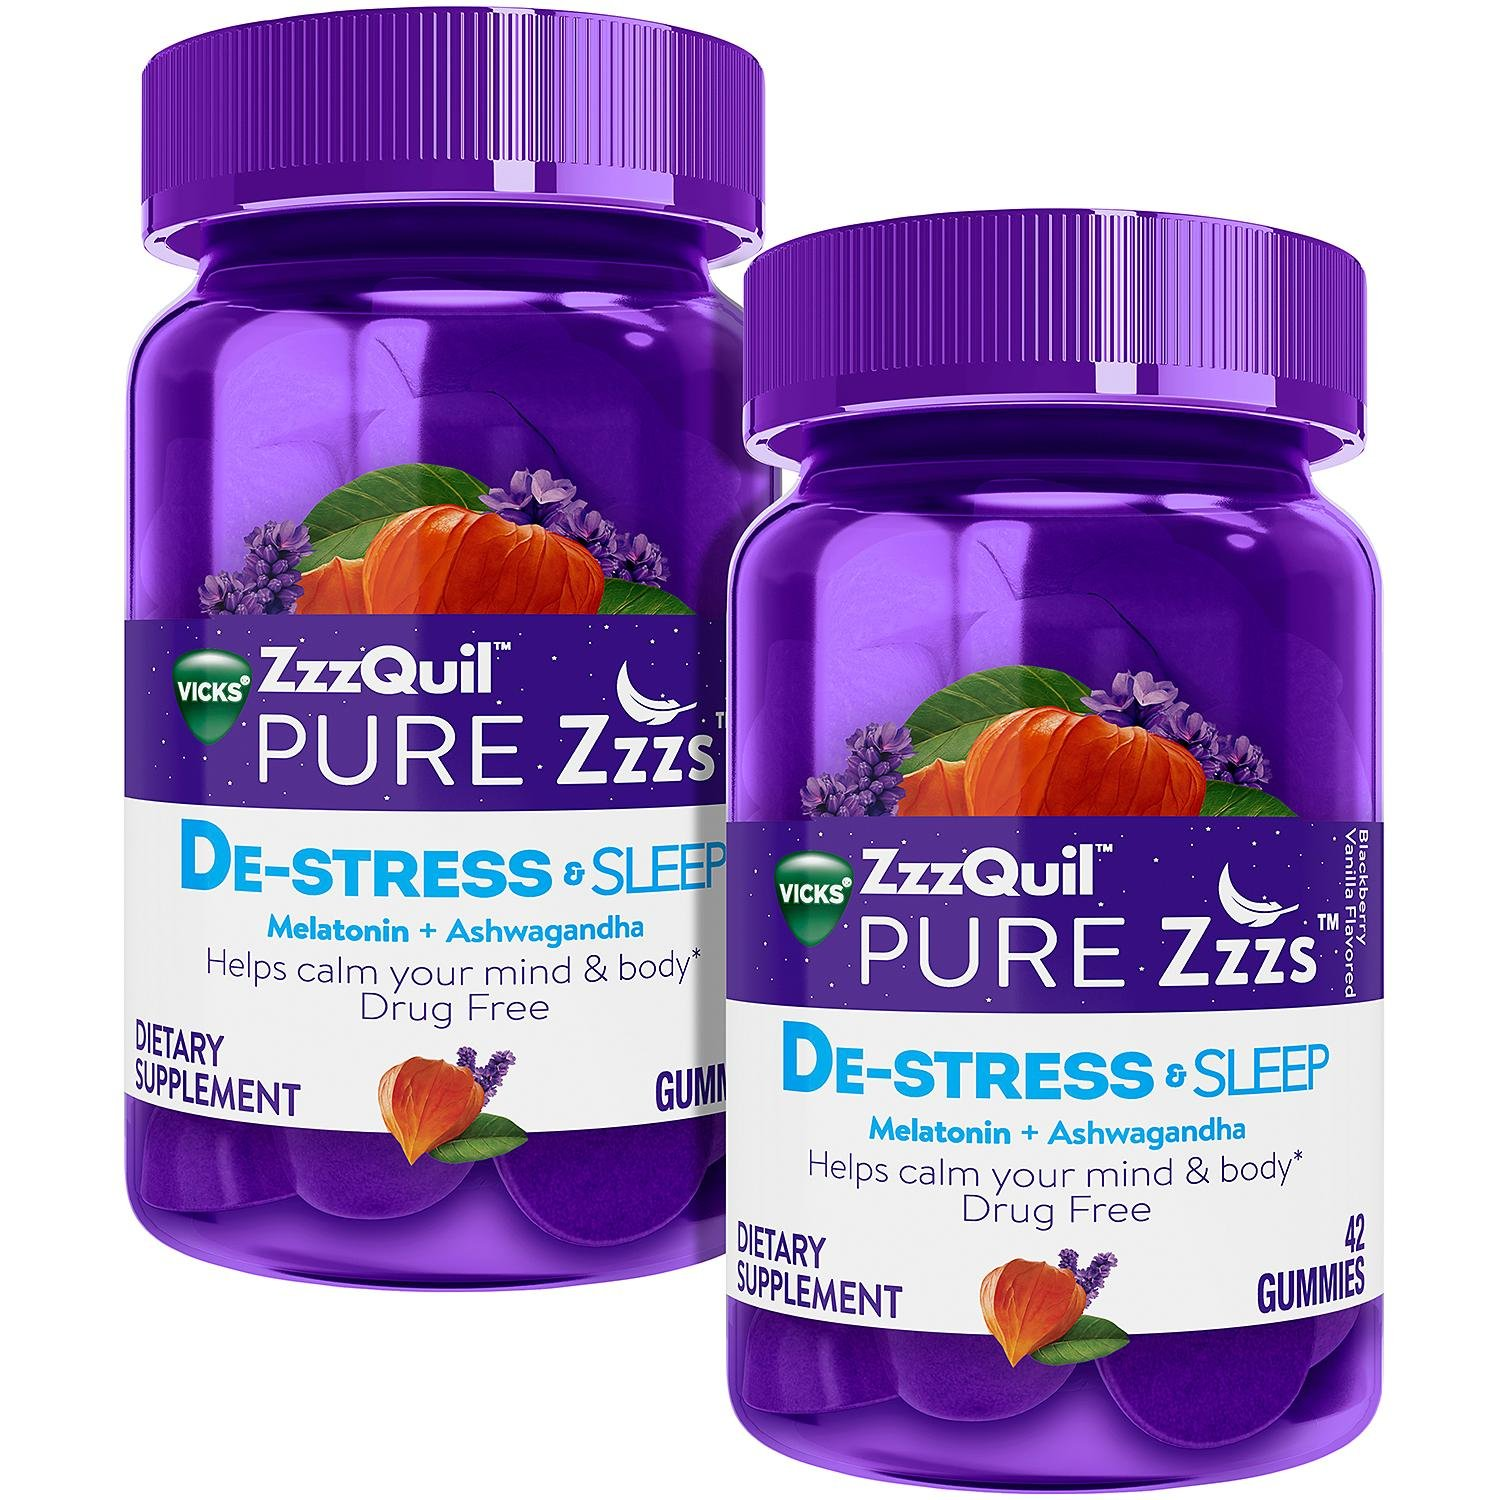 Vicks ZzzQuil Pure Zzzs, De-Stress and Sleep, Melatonin + Ashwagandha Gummie (42 ct., 2 pk.)